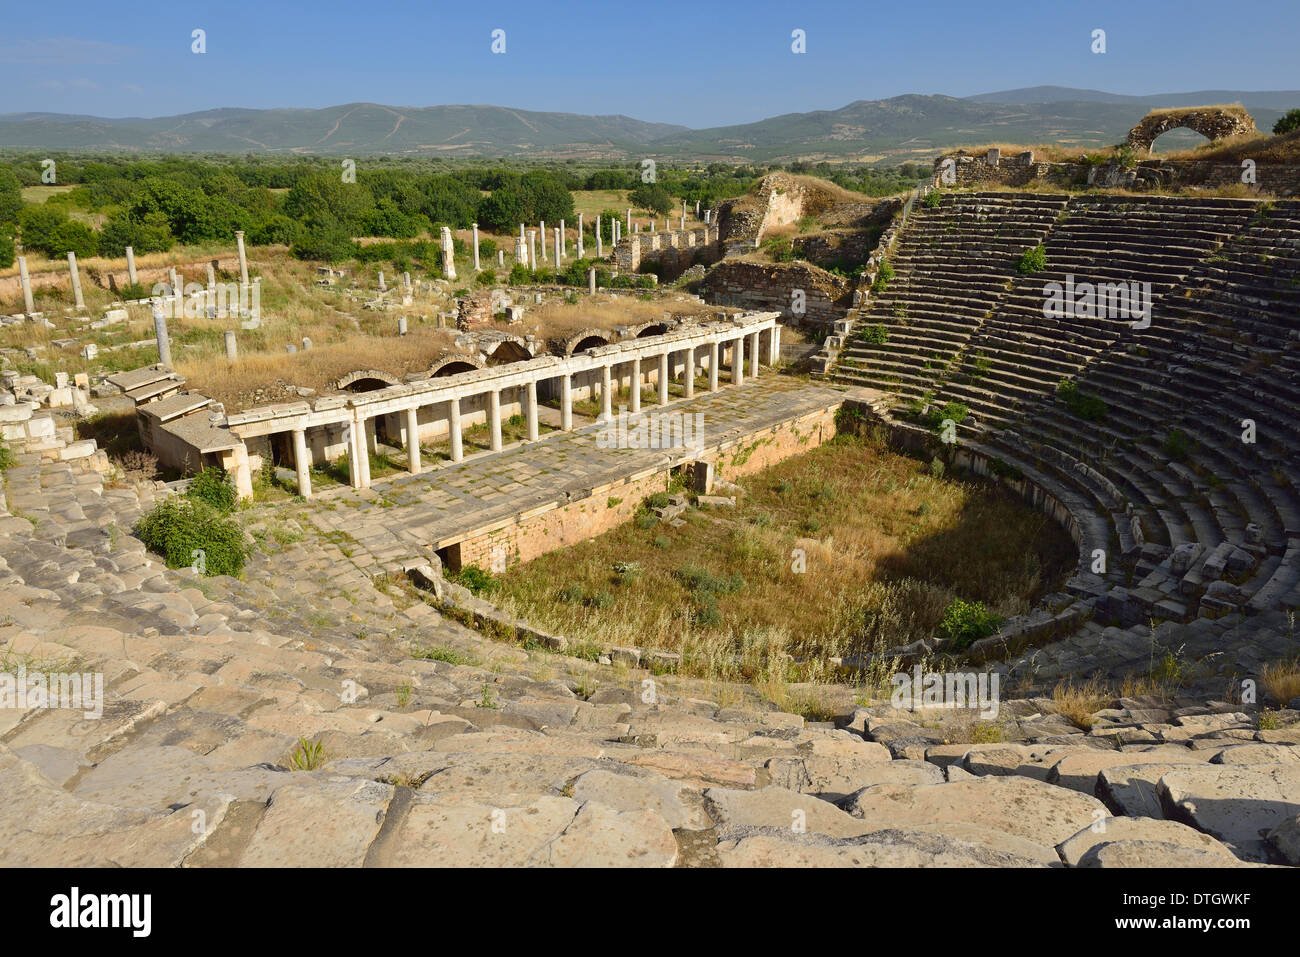 Antique theater, archaelogical site of Aphrodisias, Caria, Aydin Province, Turkey - Stock Image